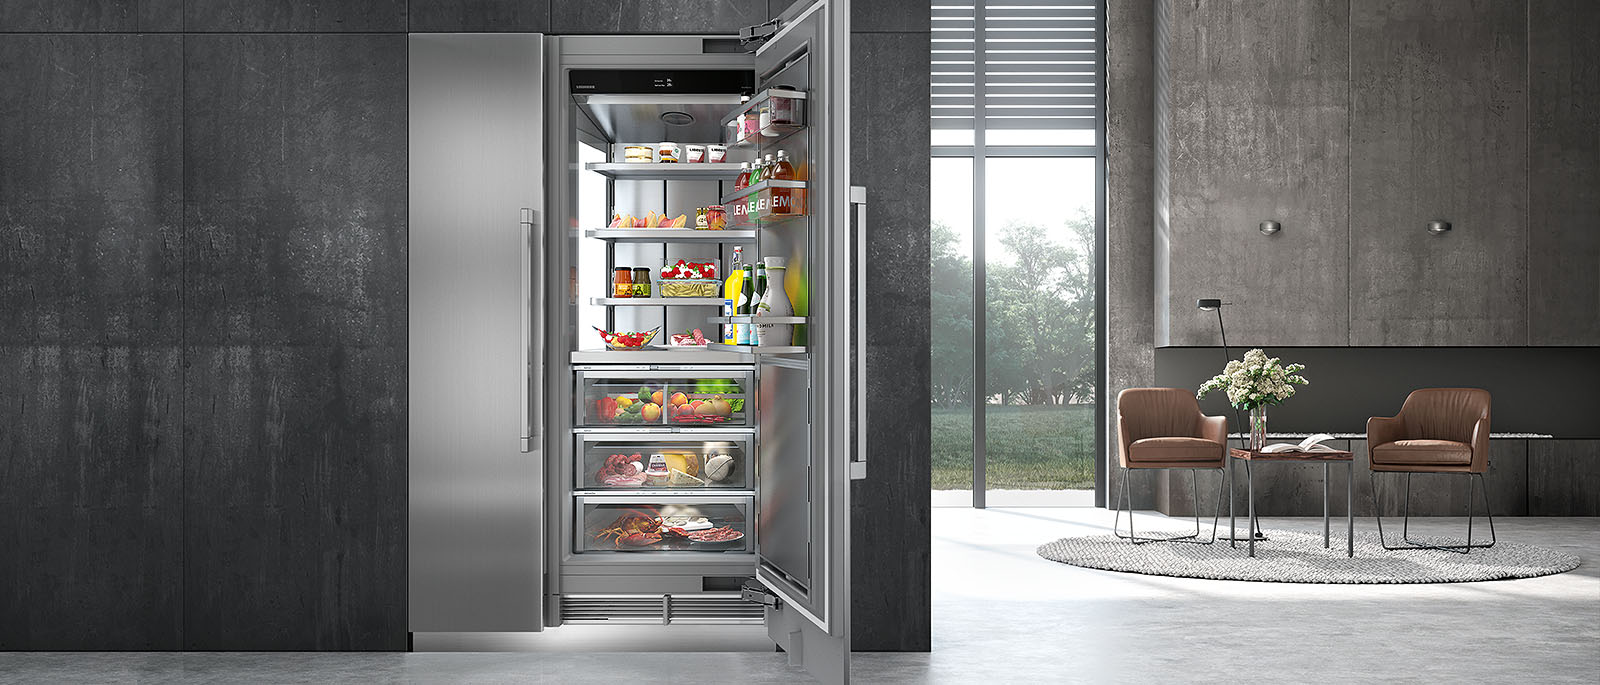 Liebherr LIREFSET300018511 Side-by-Side Column Refrigerator & Freezer Set with 30 Inch Refrigerator and 18 Inch Freezer in Stainless Steel